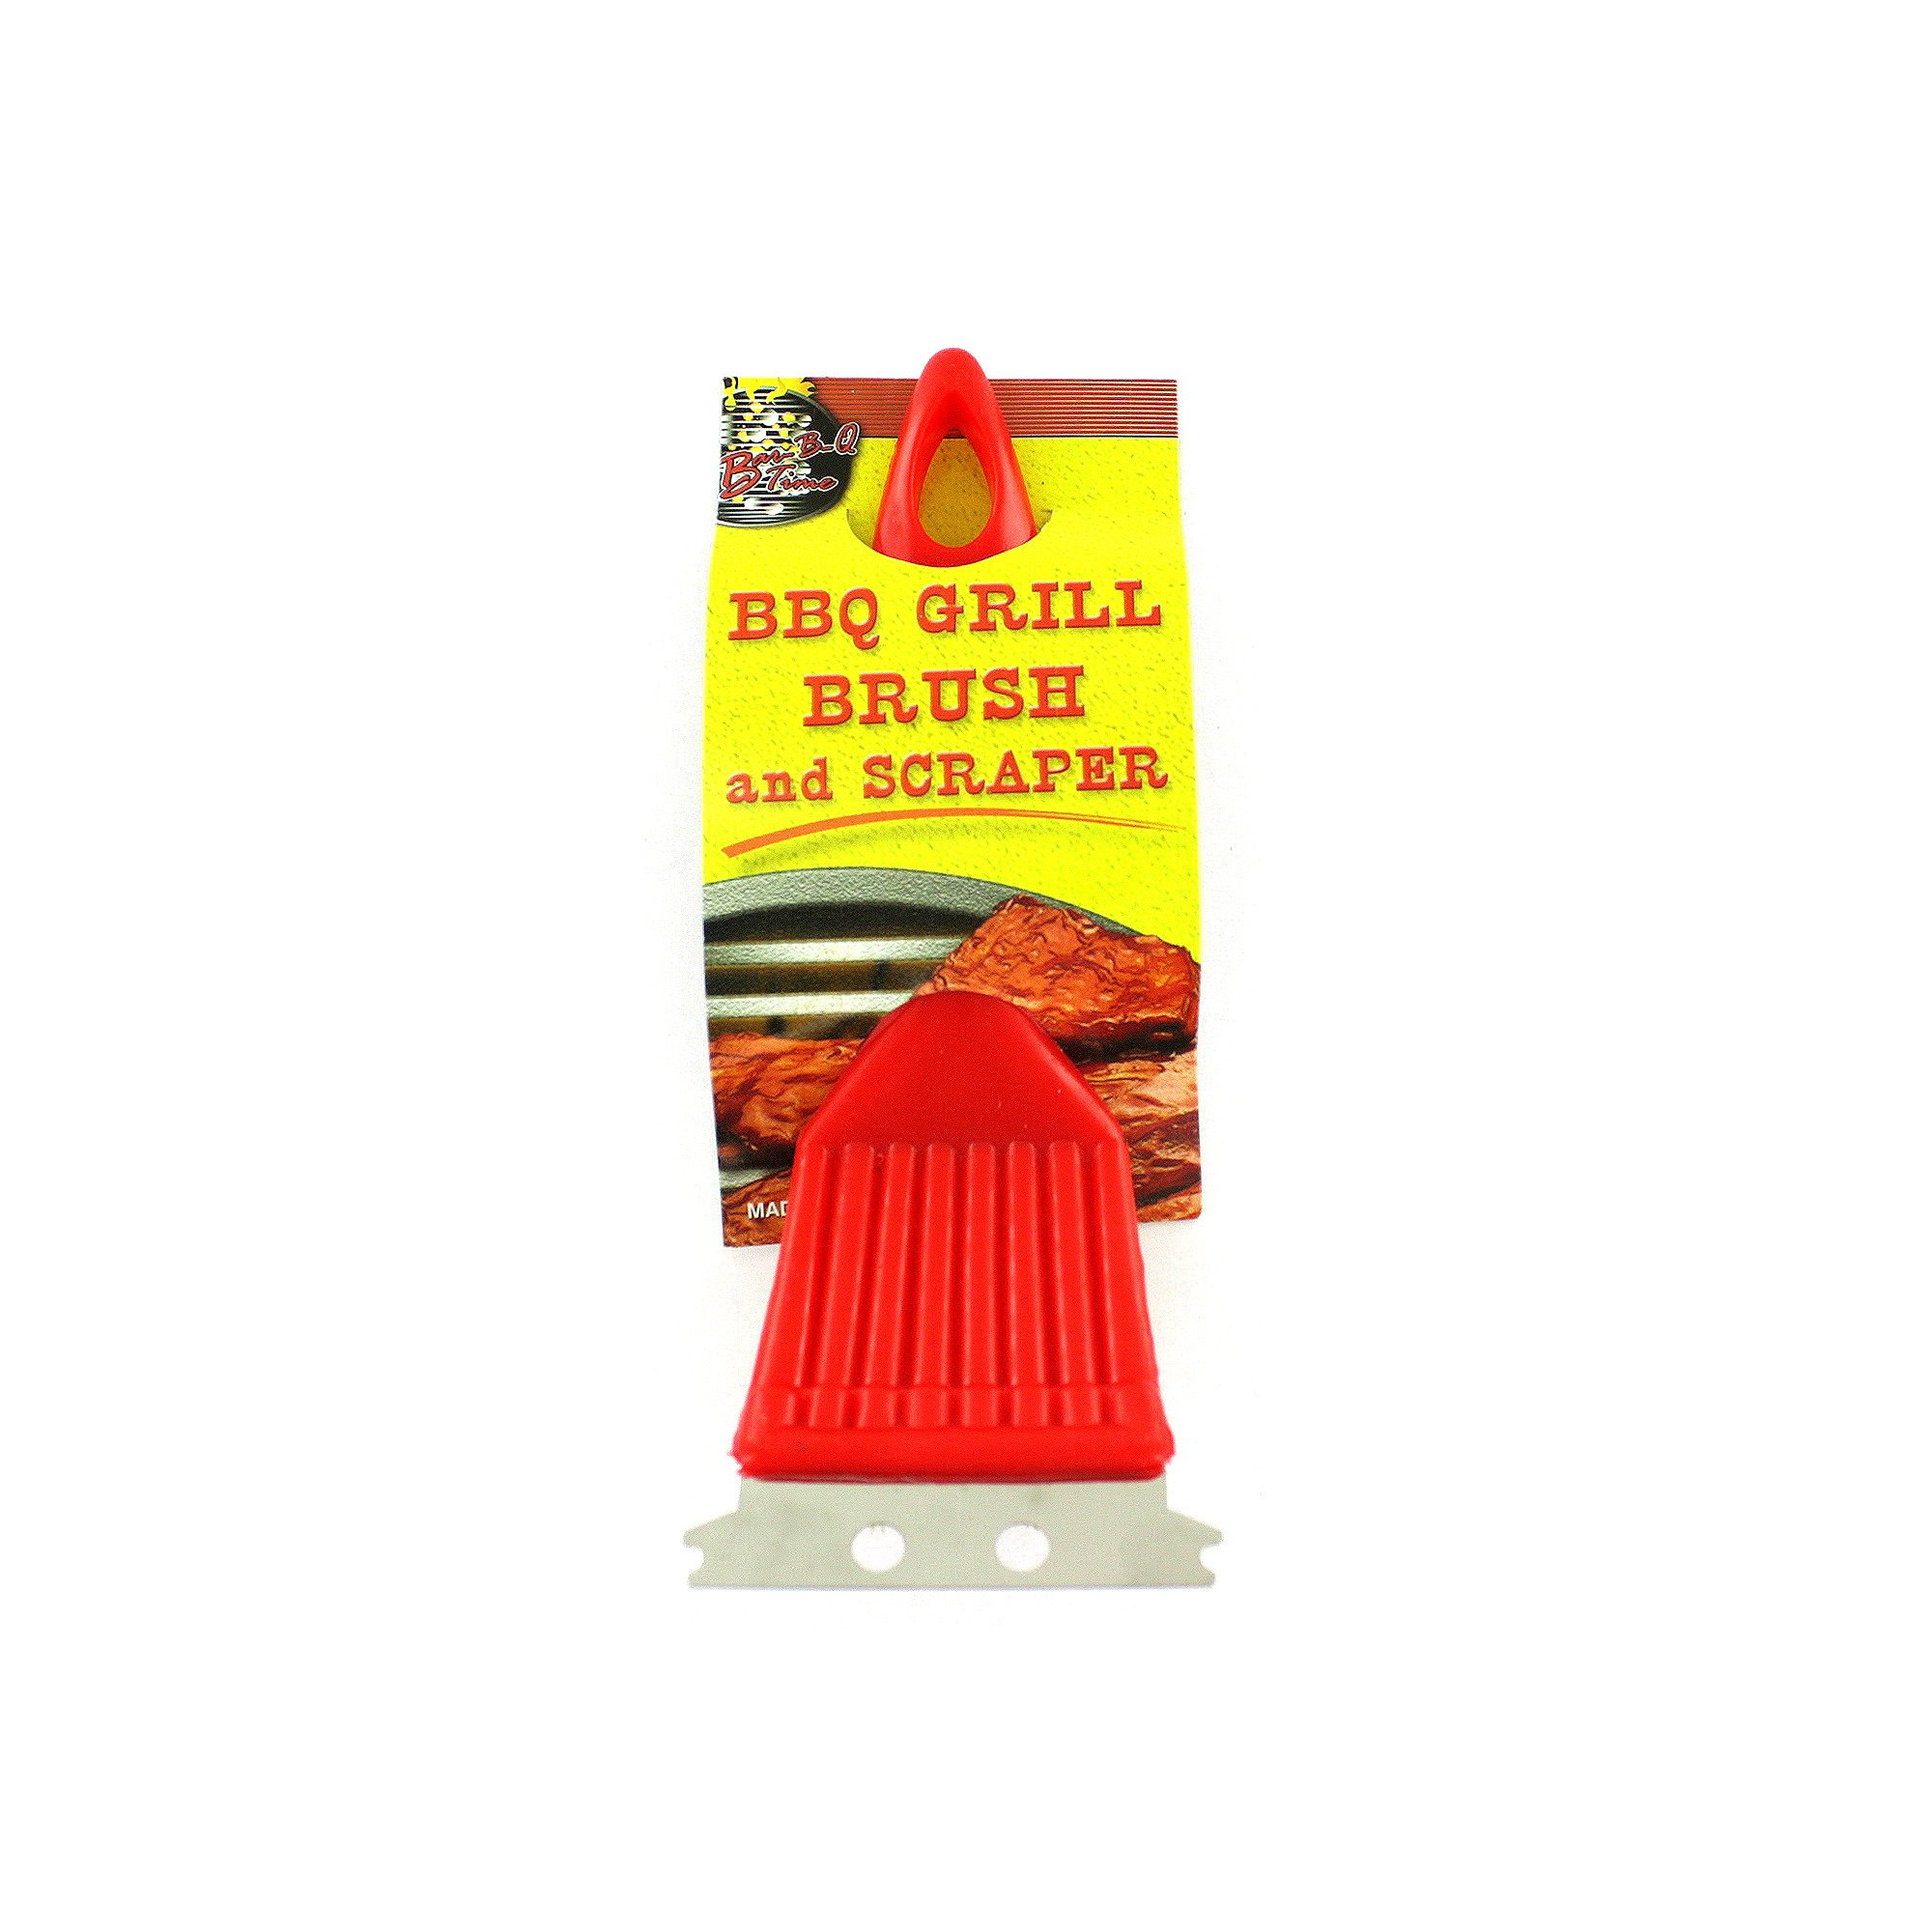 123-Wholesale - Set of 36 BBQ Grill Brush & Scraper - Barbecue BBQ Cleaning Supplies by 123-Wholesale